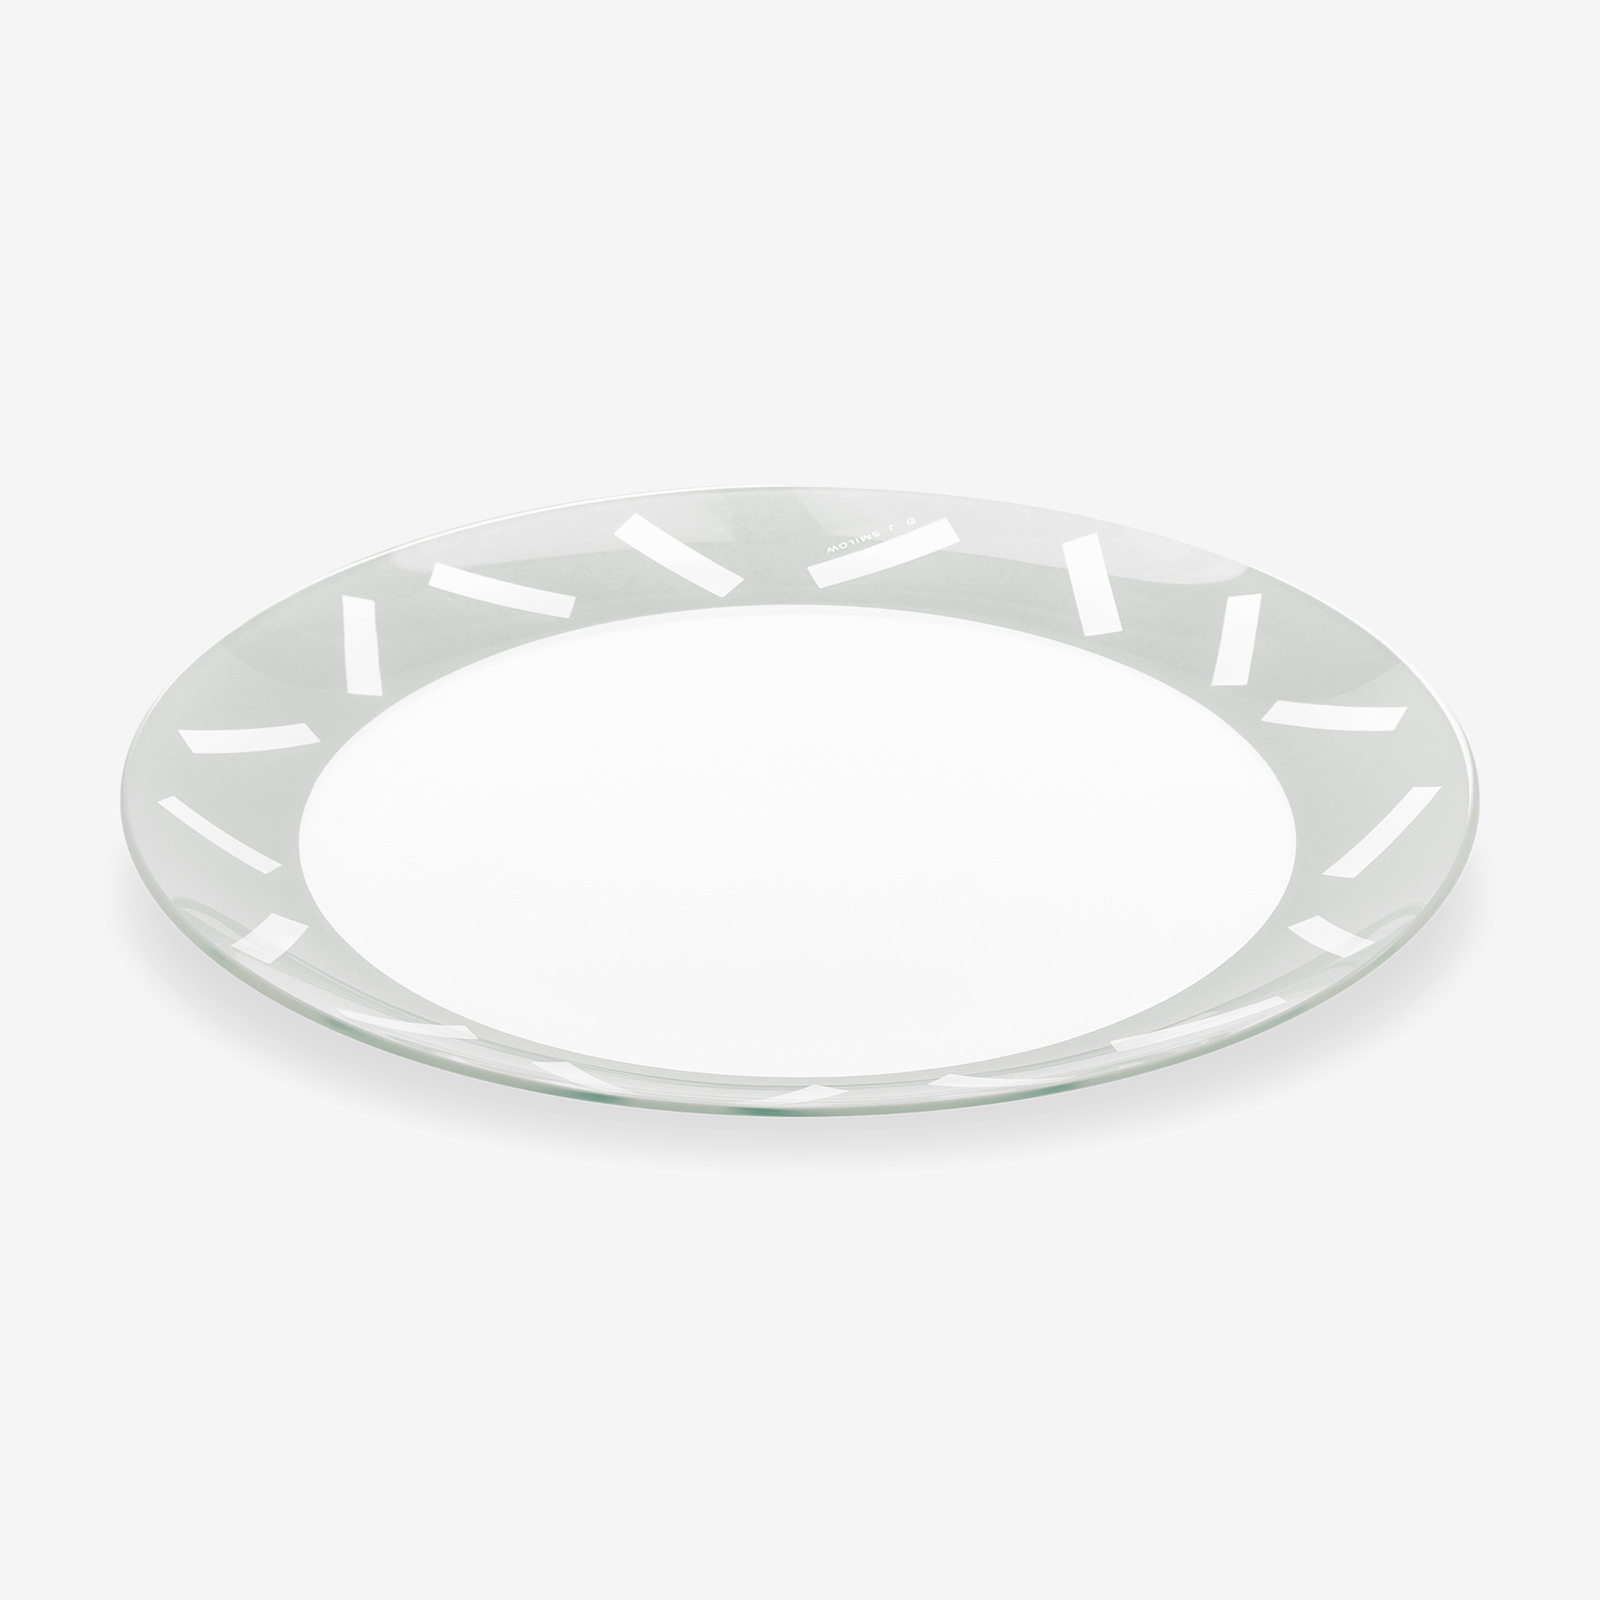 Plate product image